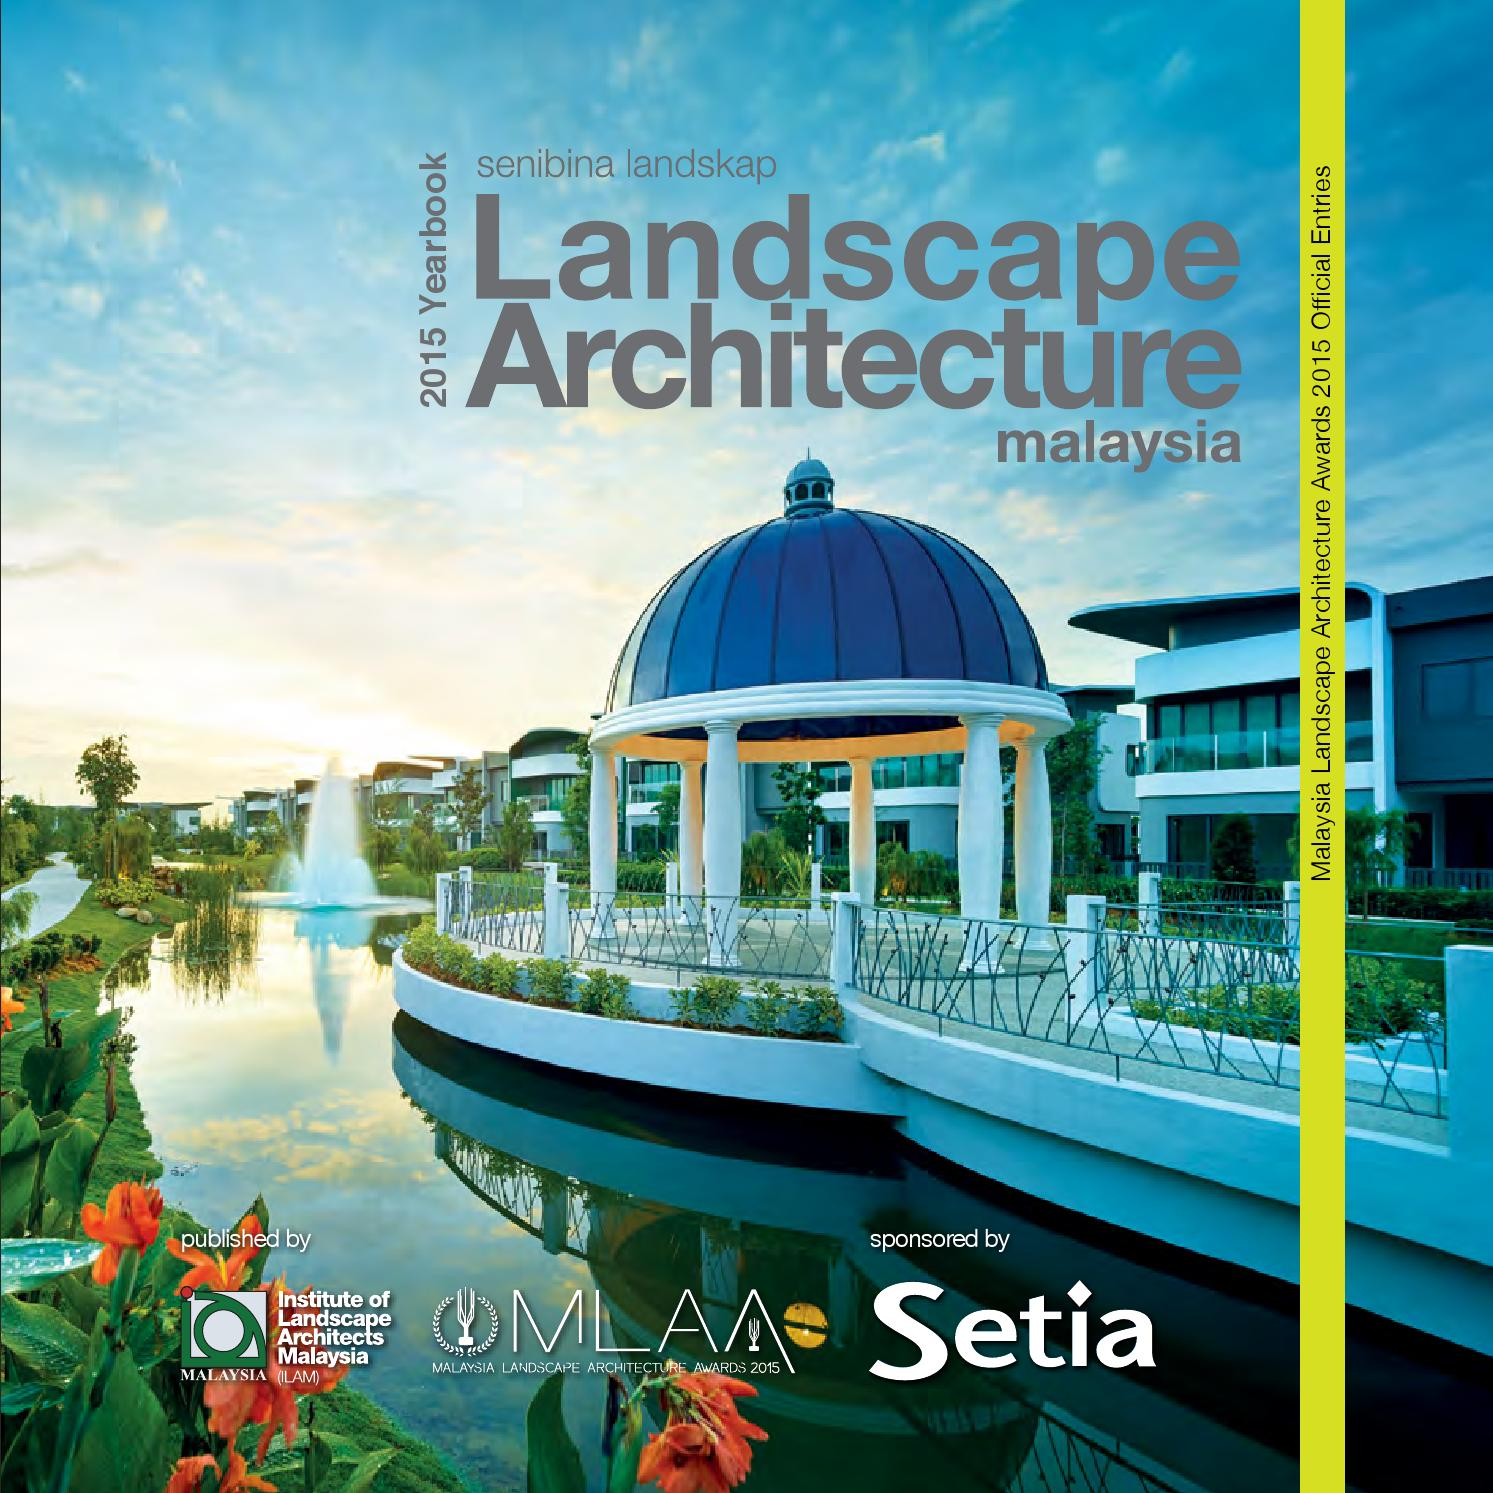 malaysia landscape architecture yearbook 2015charles teo - issuu